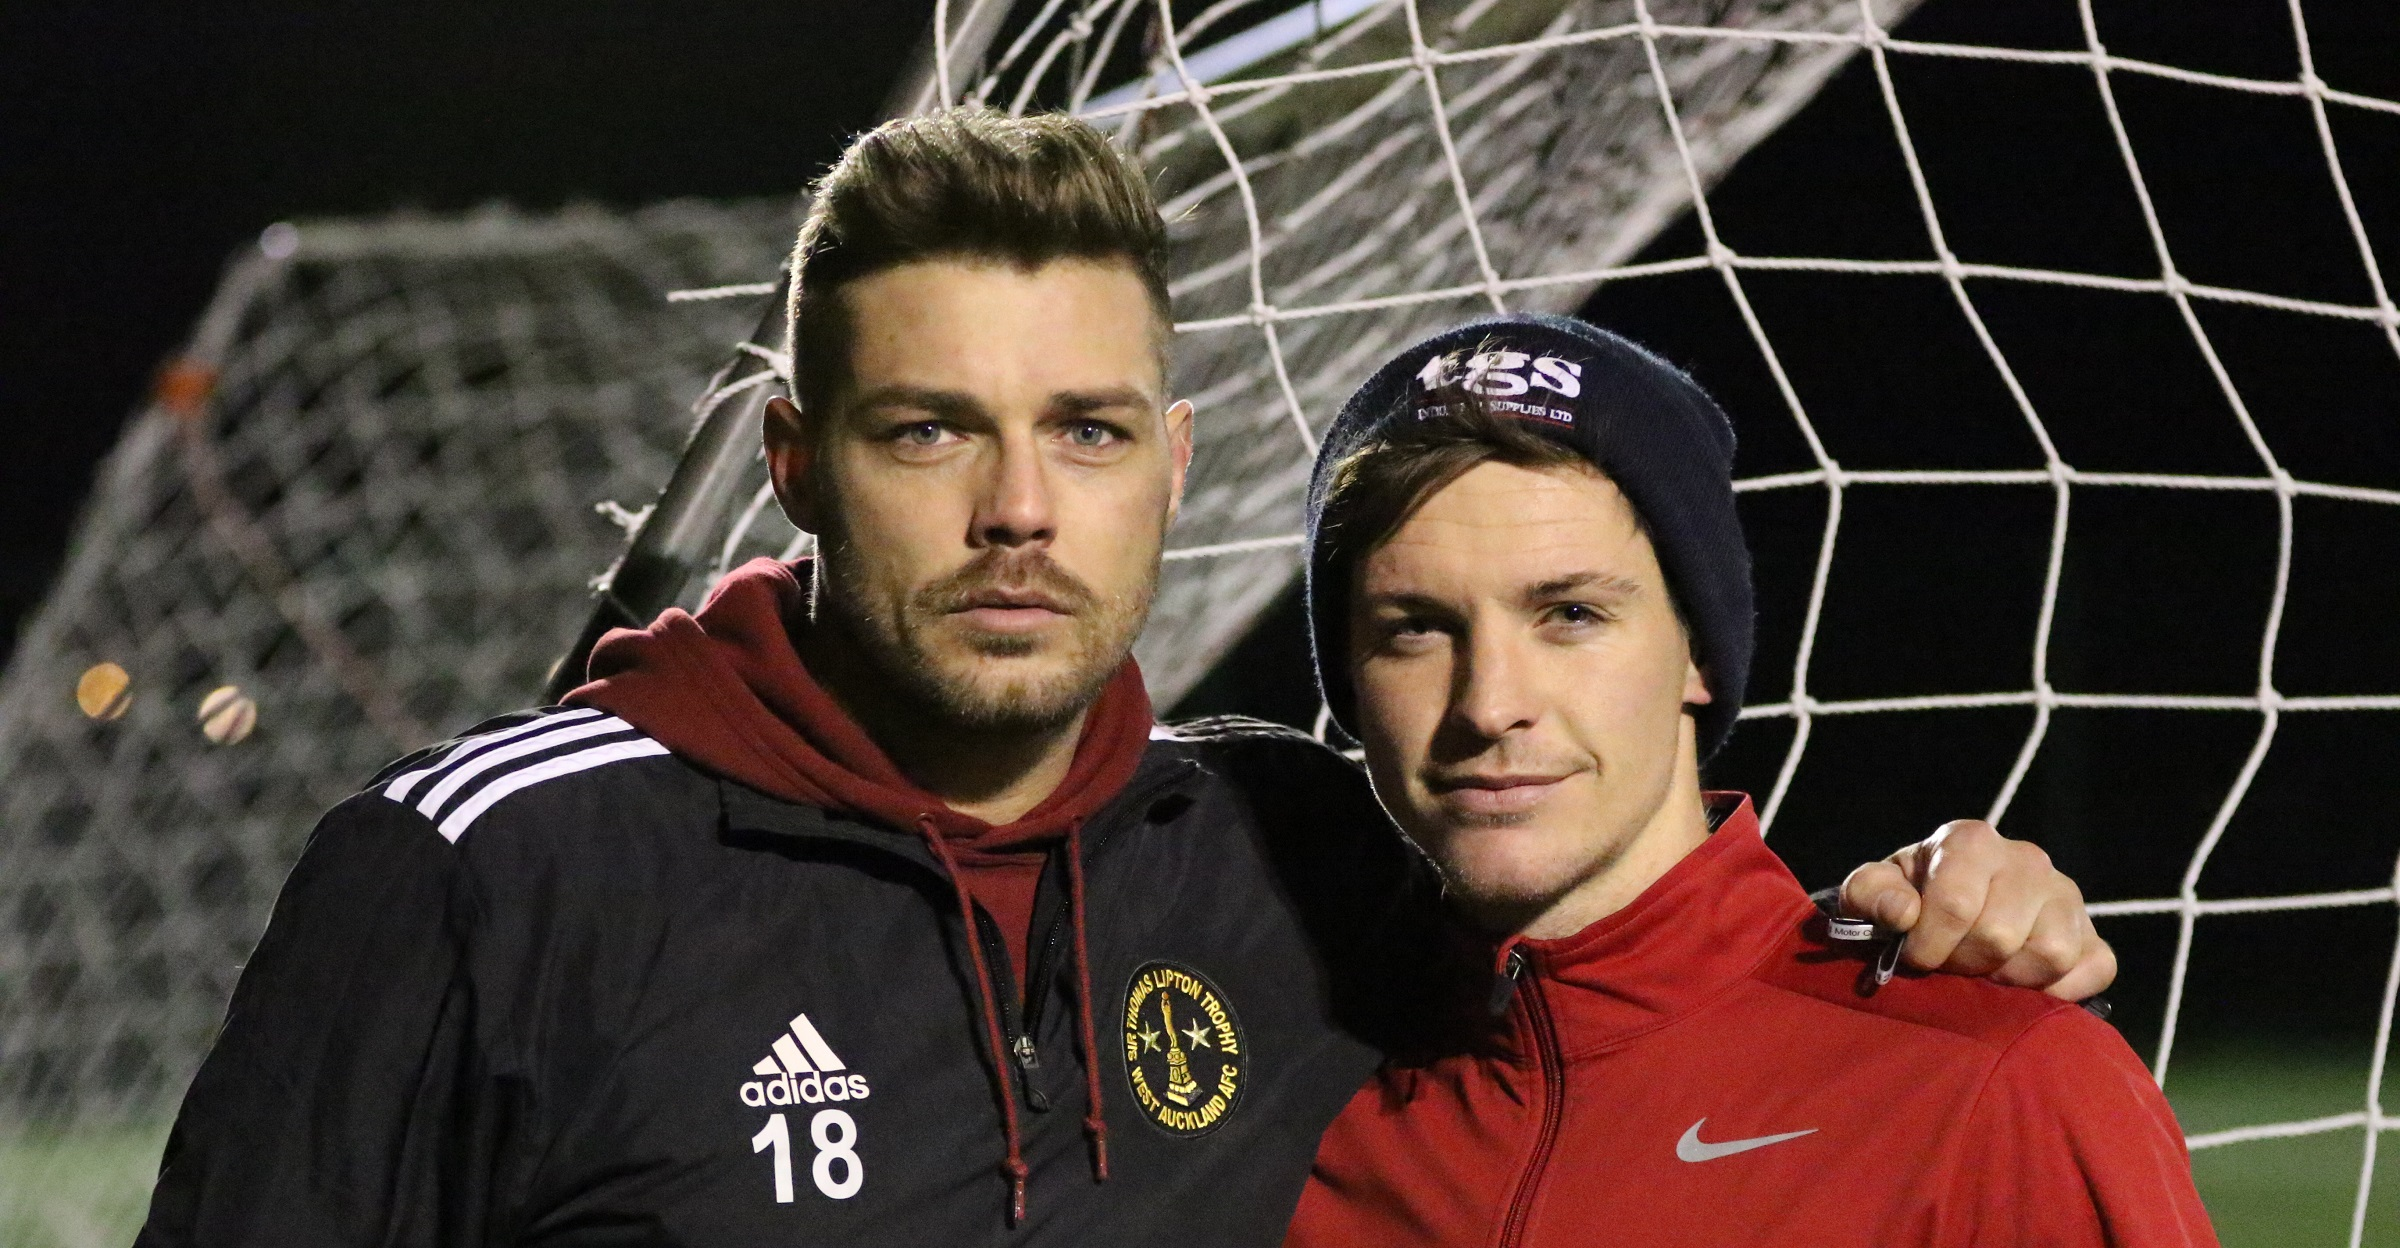 Ben Riding and Daryll Hall win Player of the Month awards